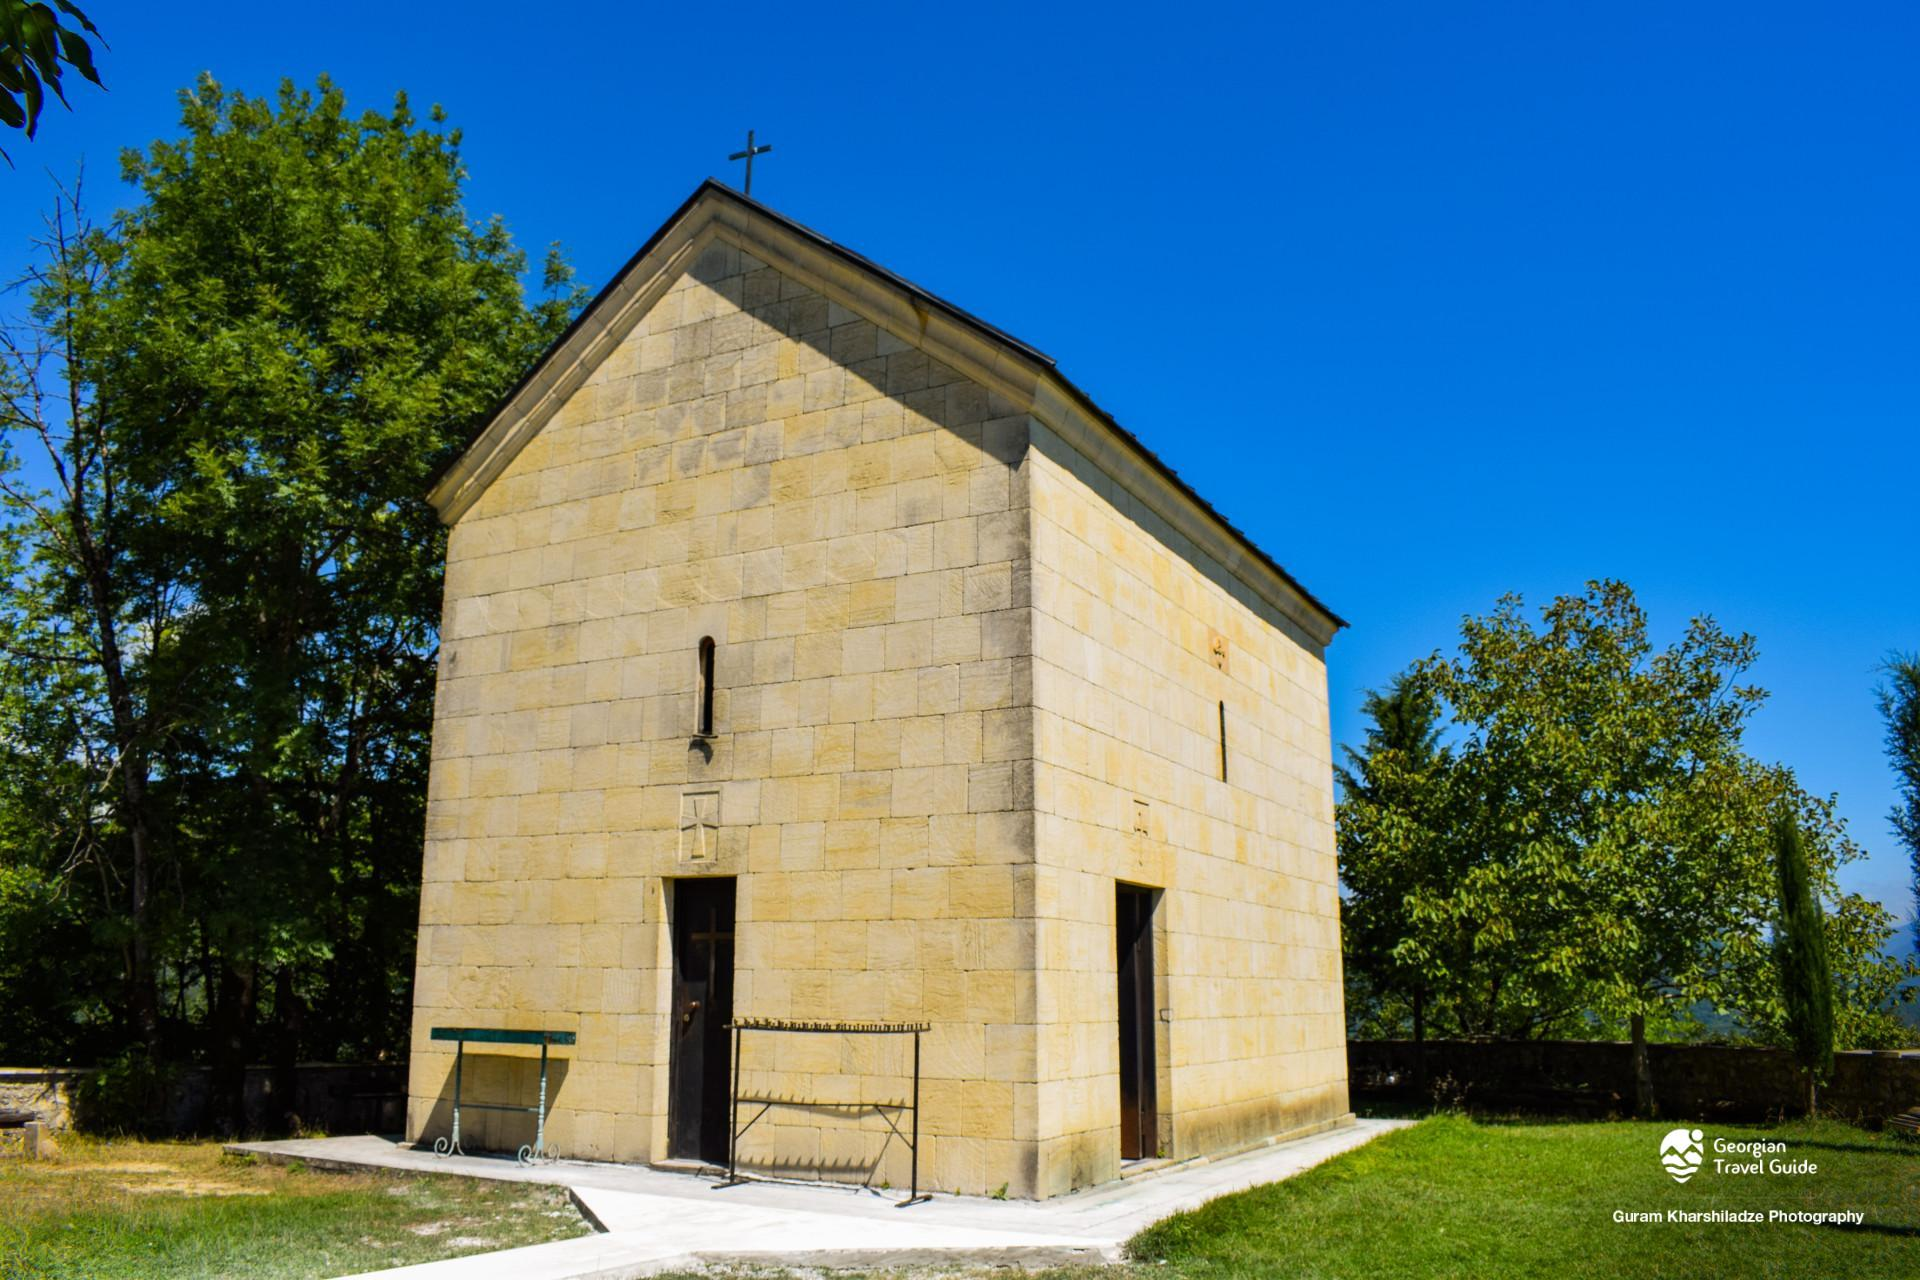 Dunta Gorijvari Church